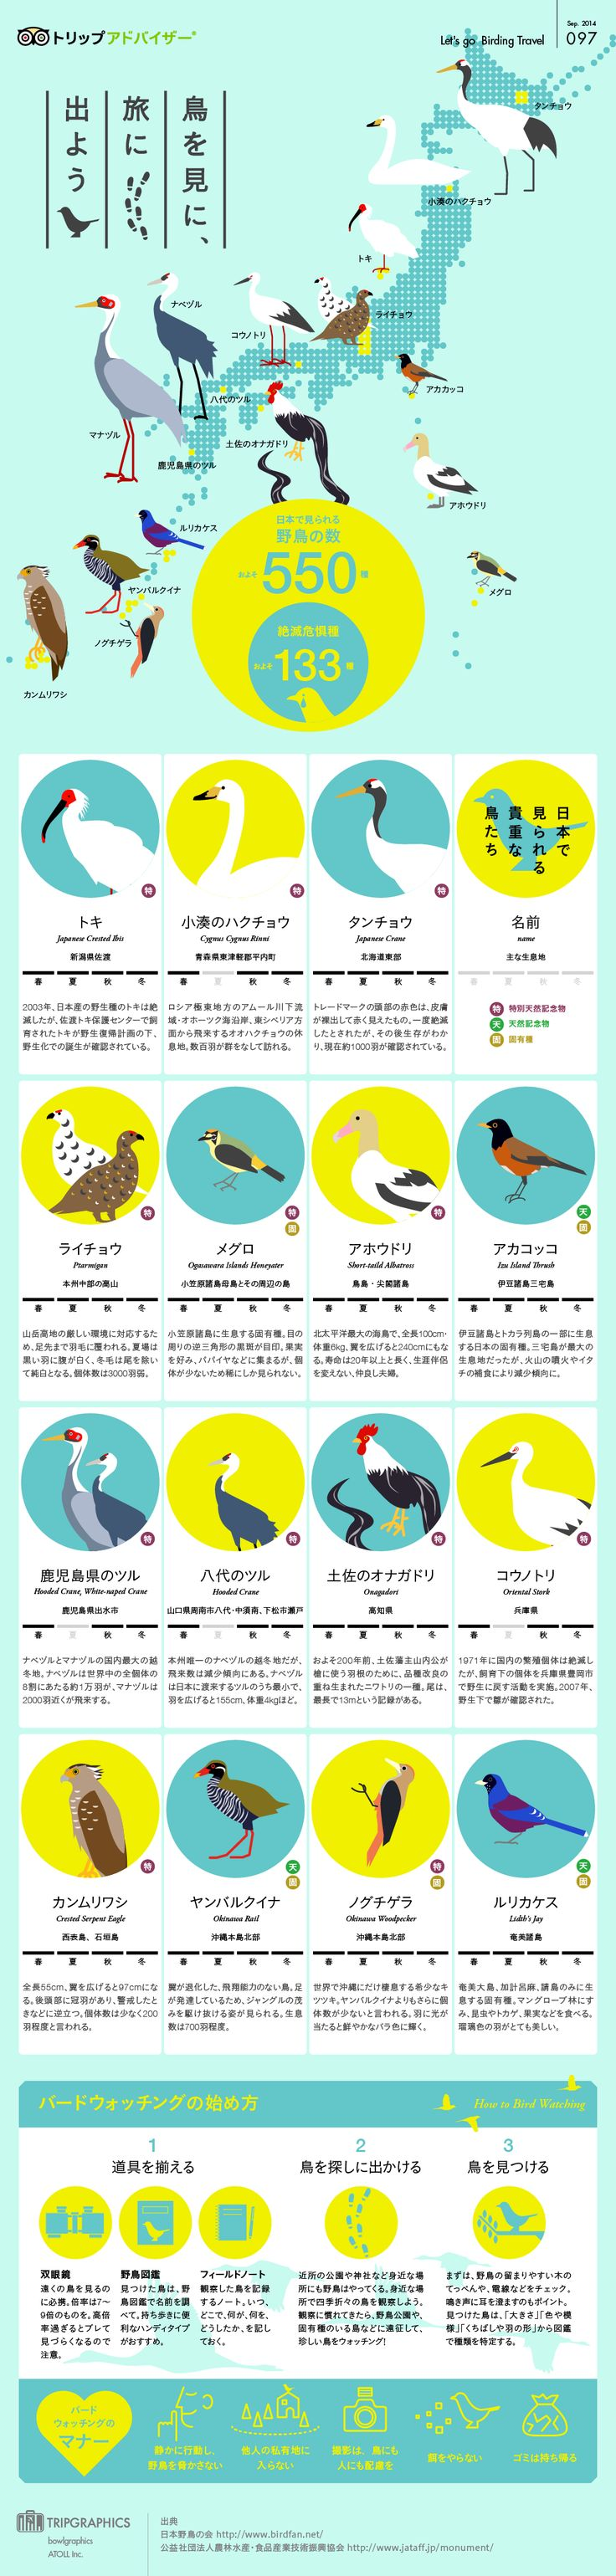 鳥を見に旅に出よう トリップアドバイザーのインフォグラフィックスで世界の旅が見える // Hi Friends, look what I just found on #web #design! Make sure to follow us @moirestudiosjkt to see more pins like this | Moire Studios is a thriving website and graphic design studio based in Jakarta, Indonesia.